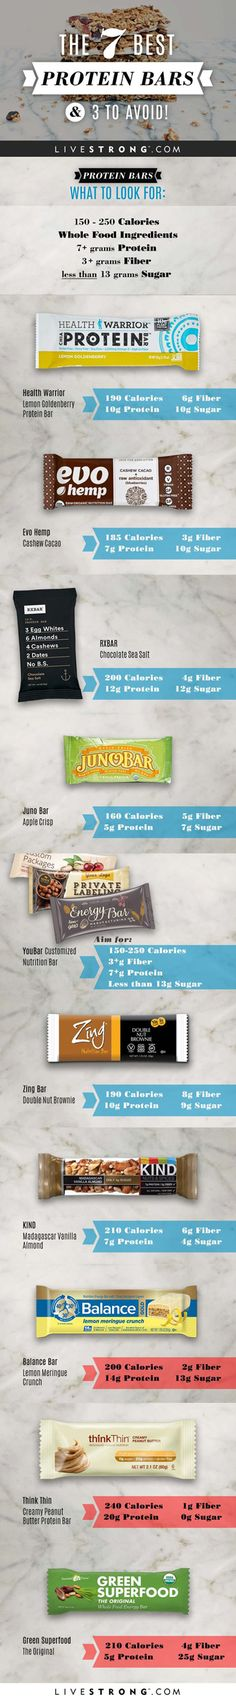 The 7 Best Protein Bars - and 3 to Avoid! http://www.livestrong.com/slideshow/1011743-7-protein-bars-3-avoid/